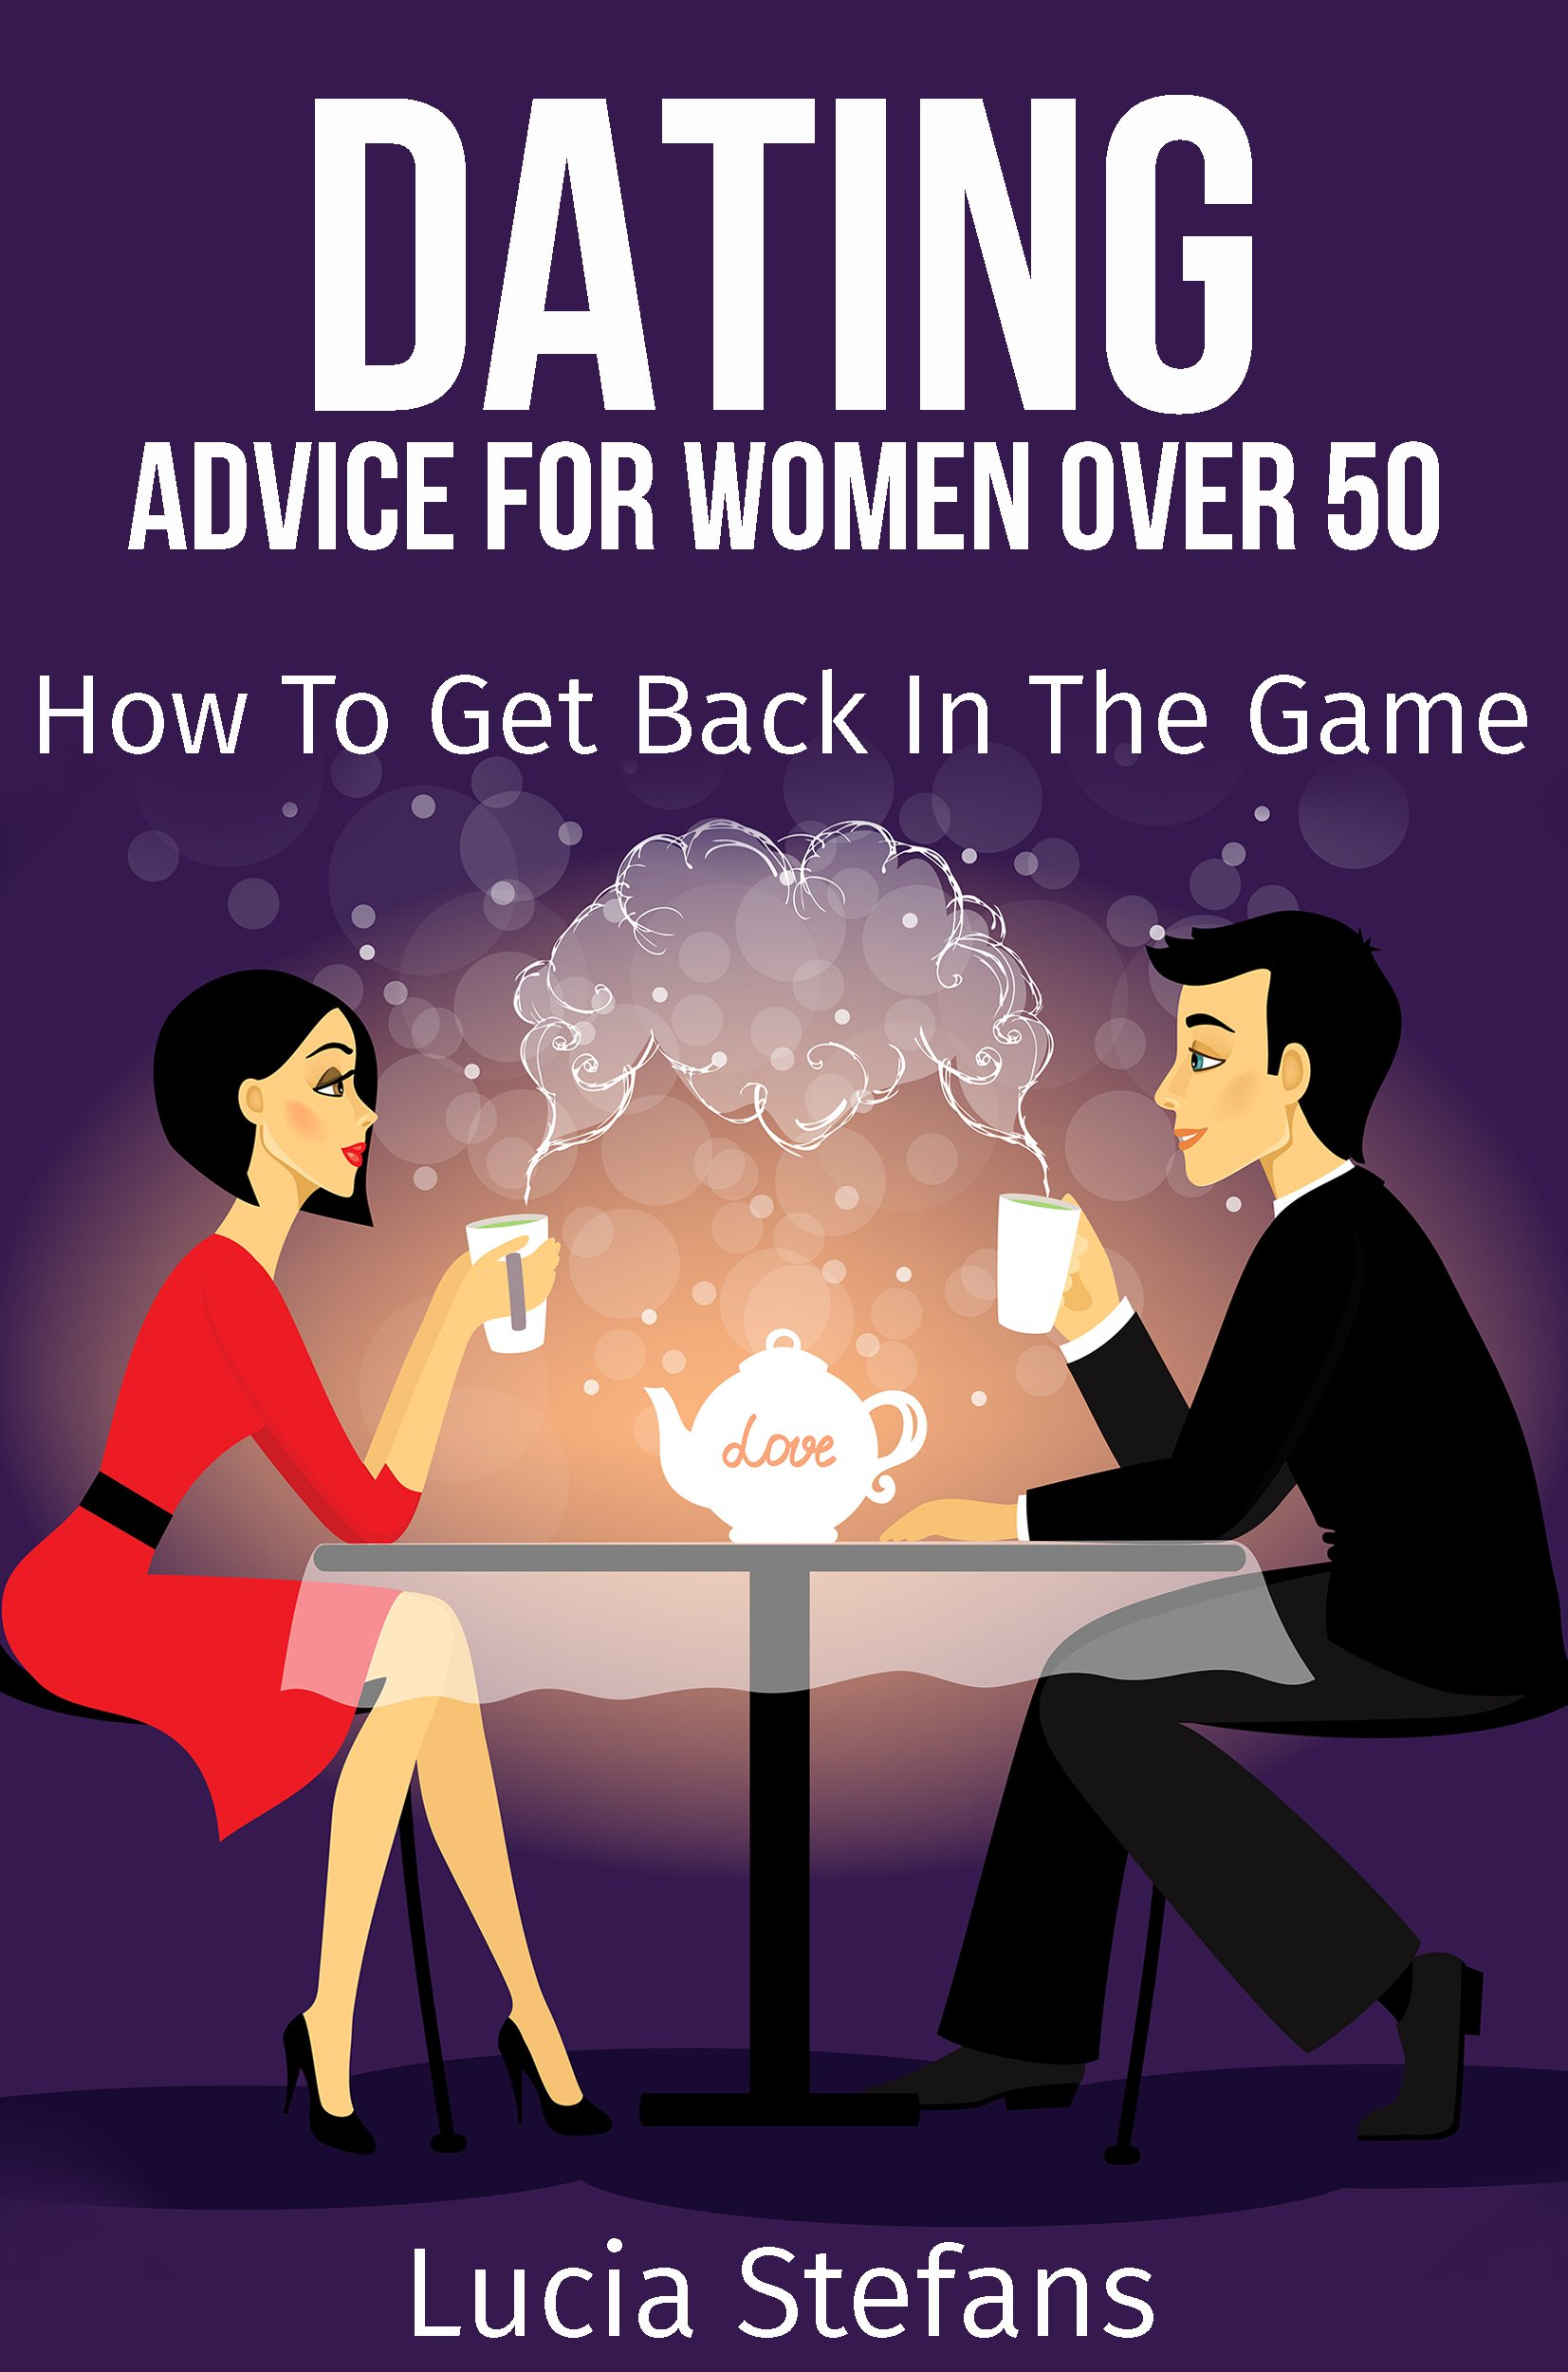 What to do when online dating sends you running for cover by gregg michaelsen